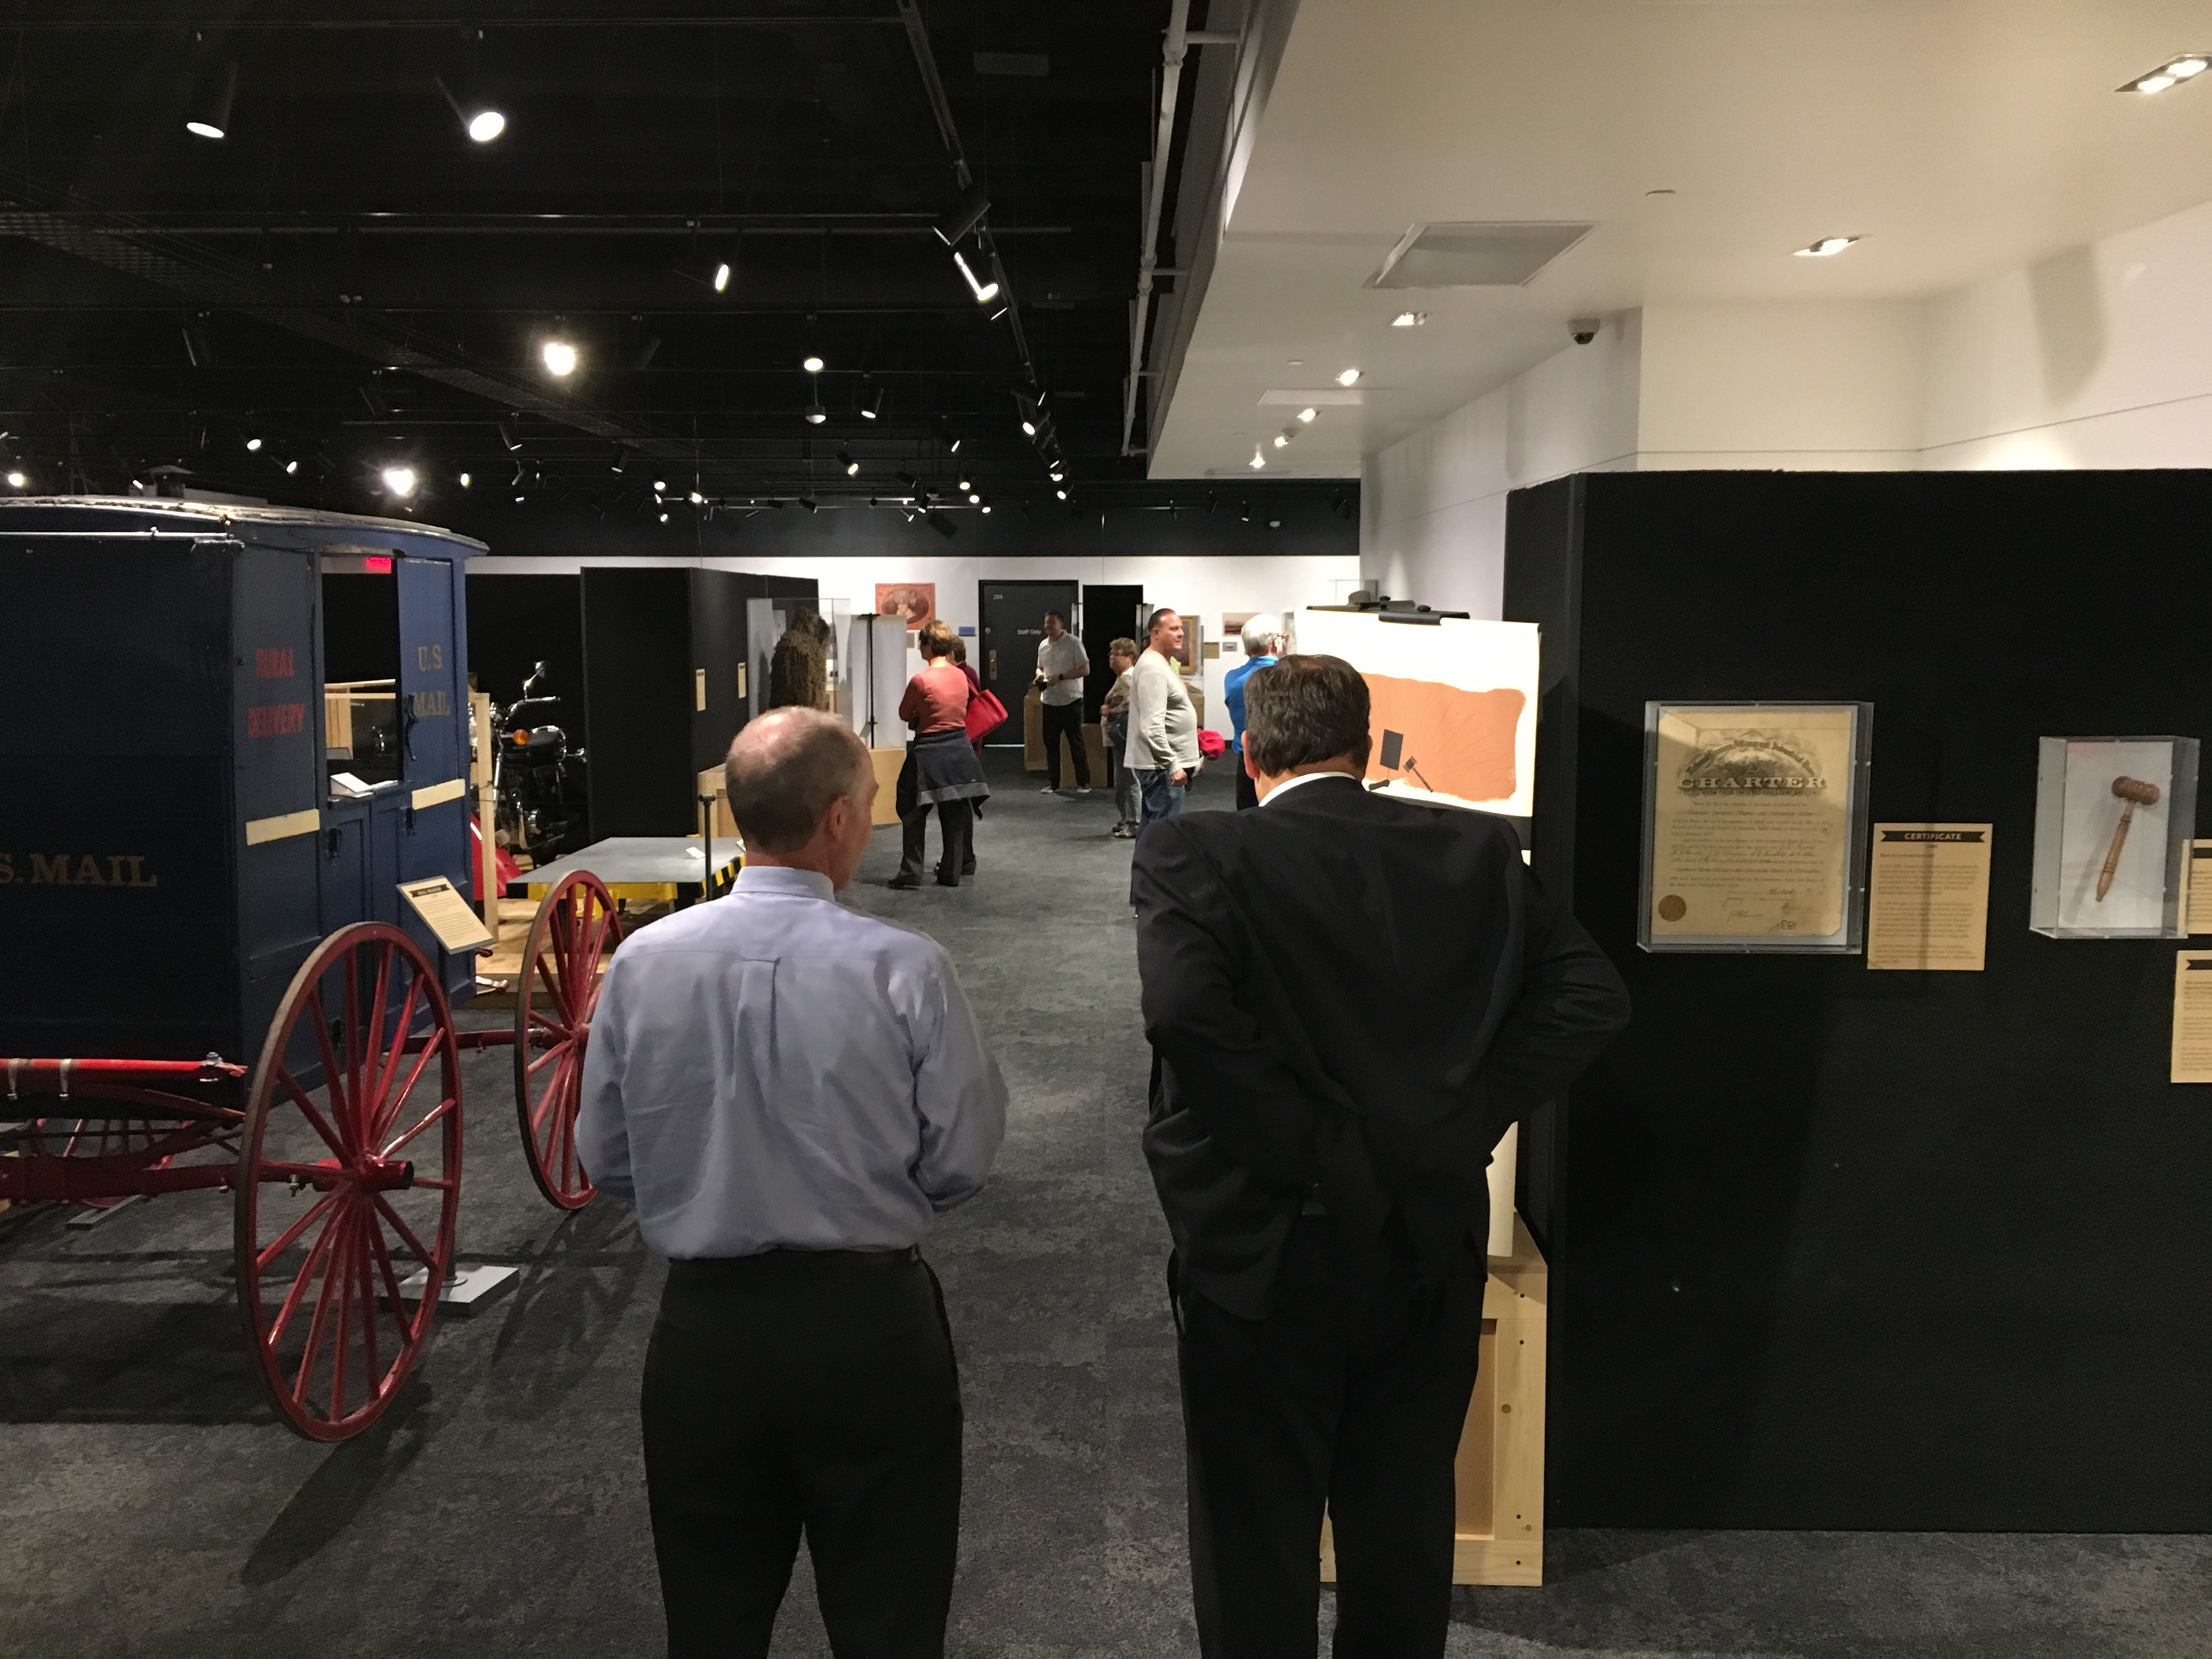 Visitors looking at museum exhibits